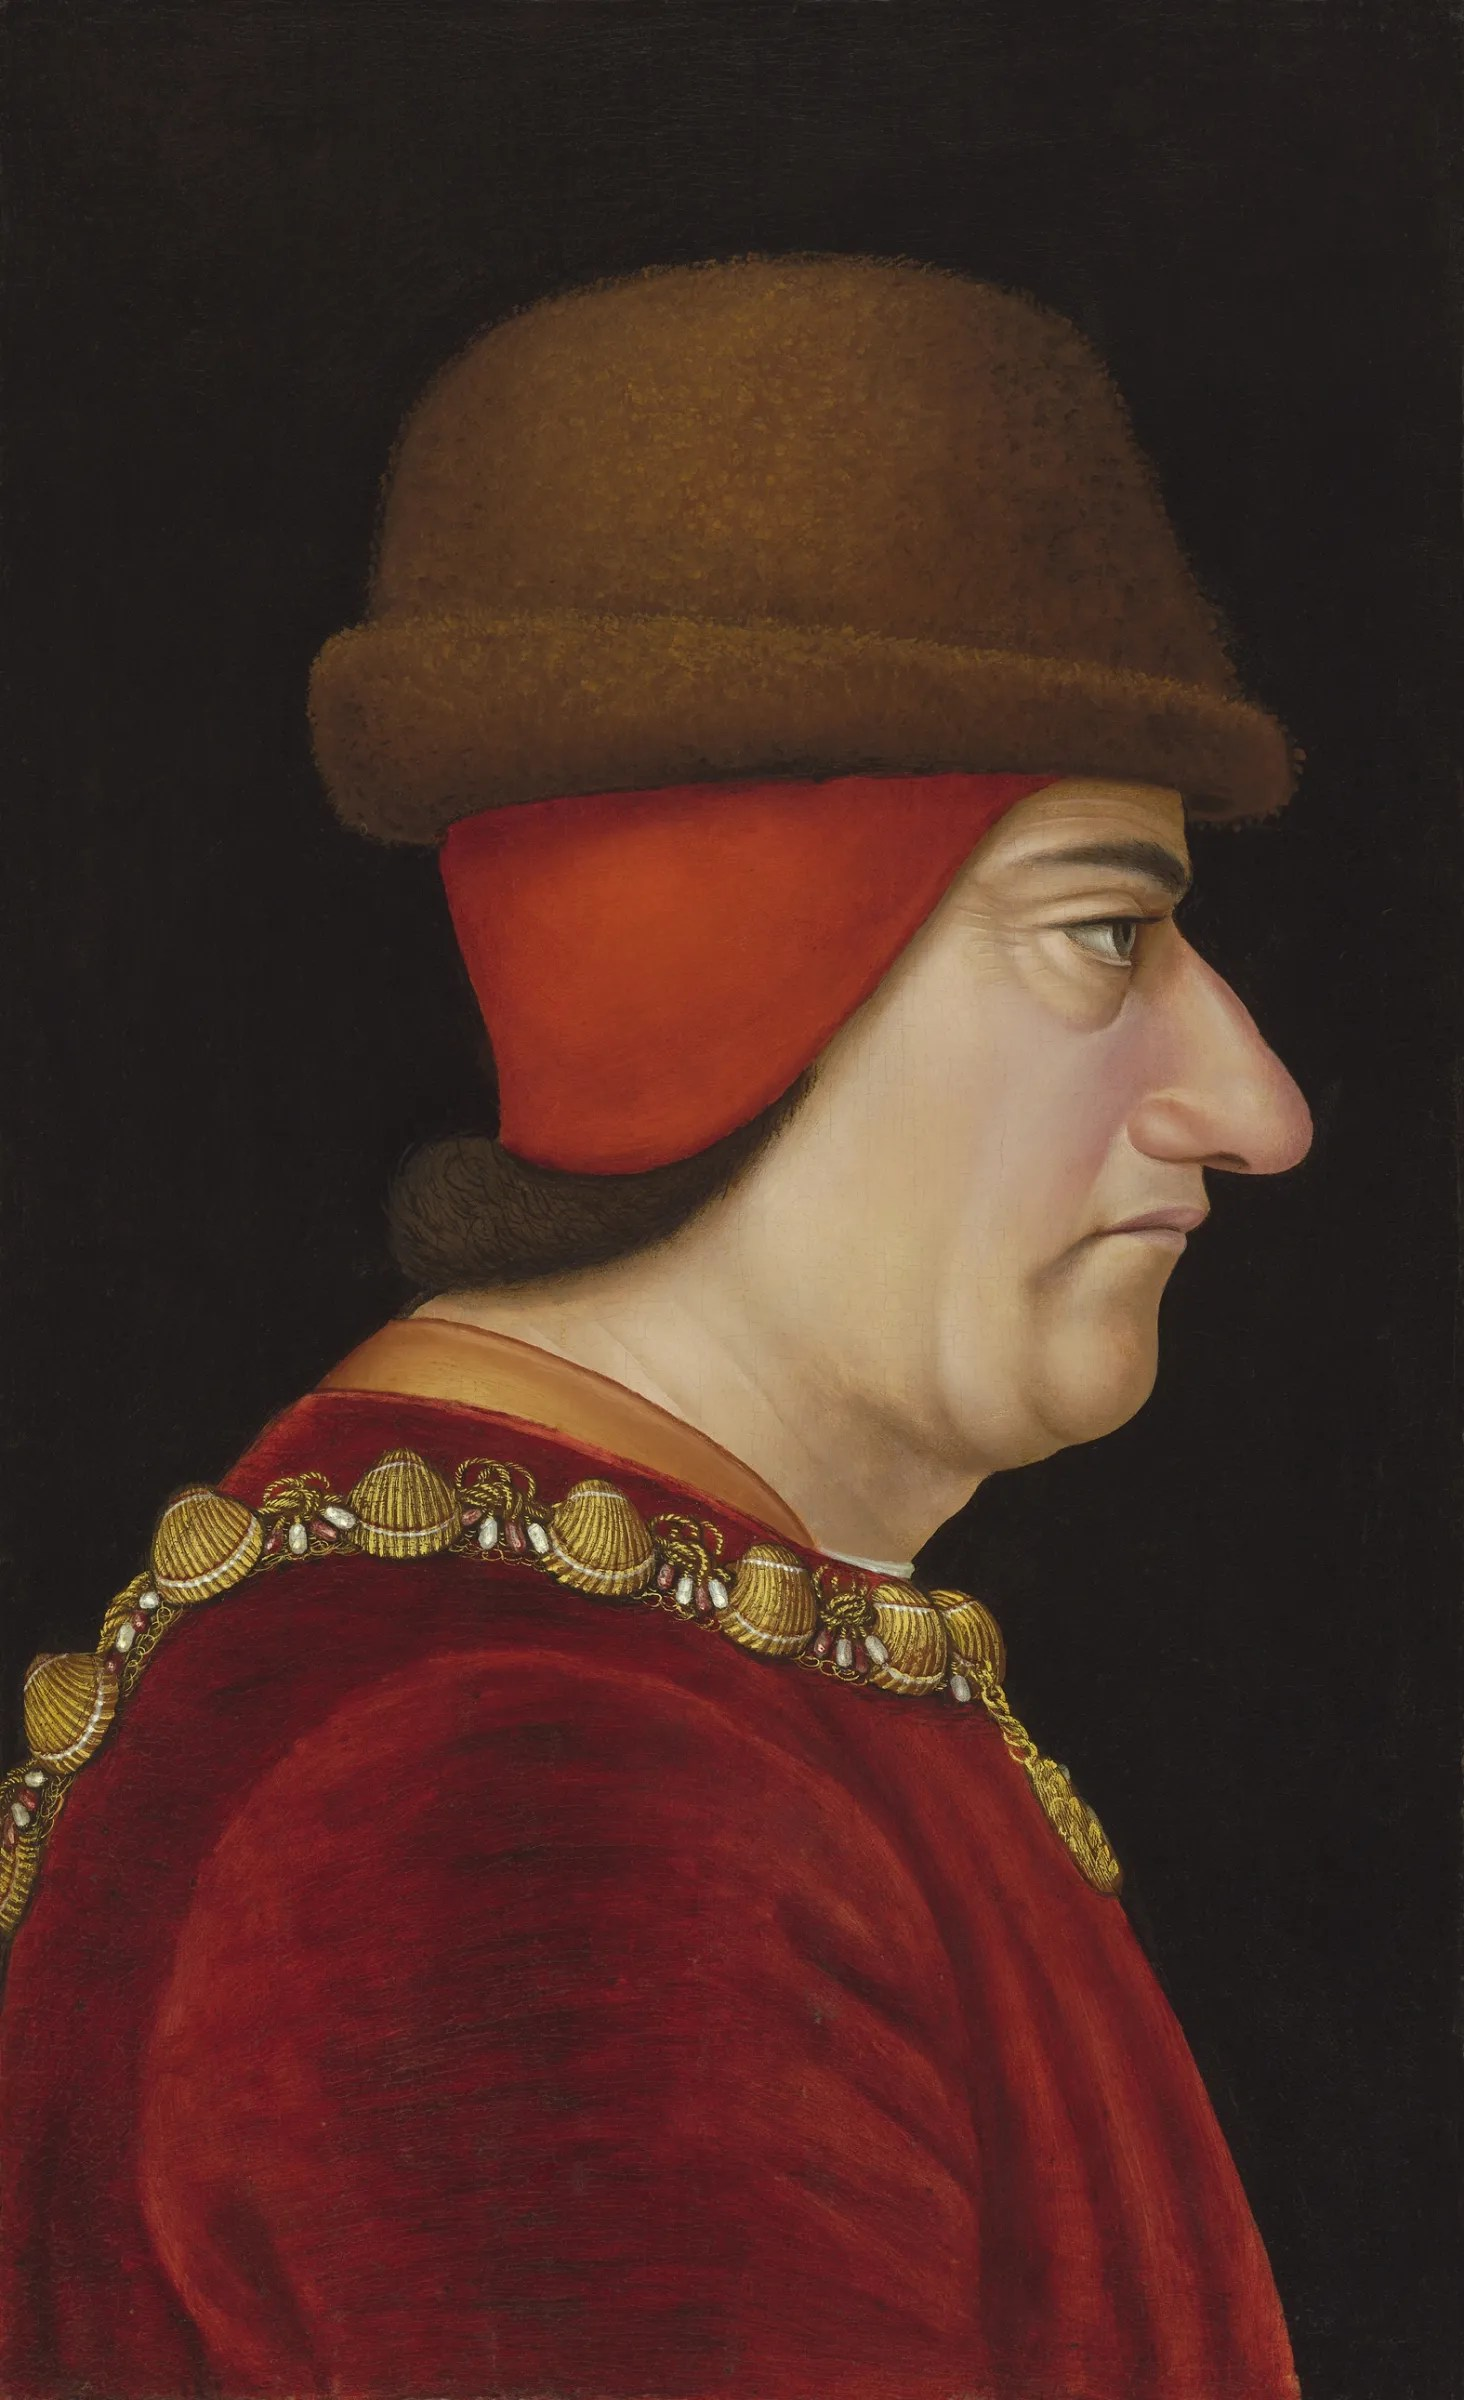 Pavillon Fedora Attributed To Jacob De Litemont D 1475 Louis Xi King Of